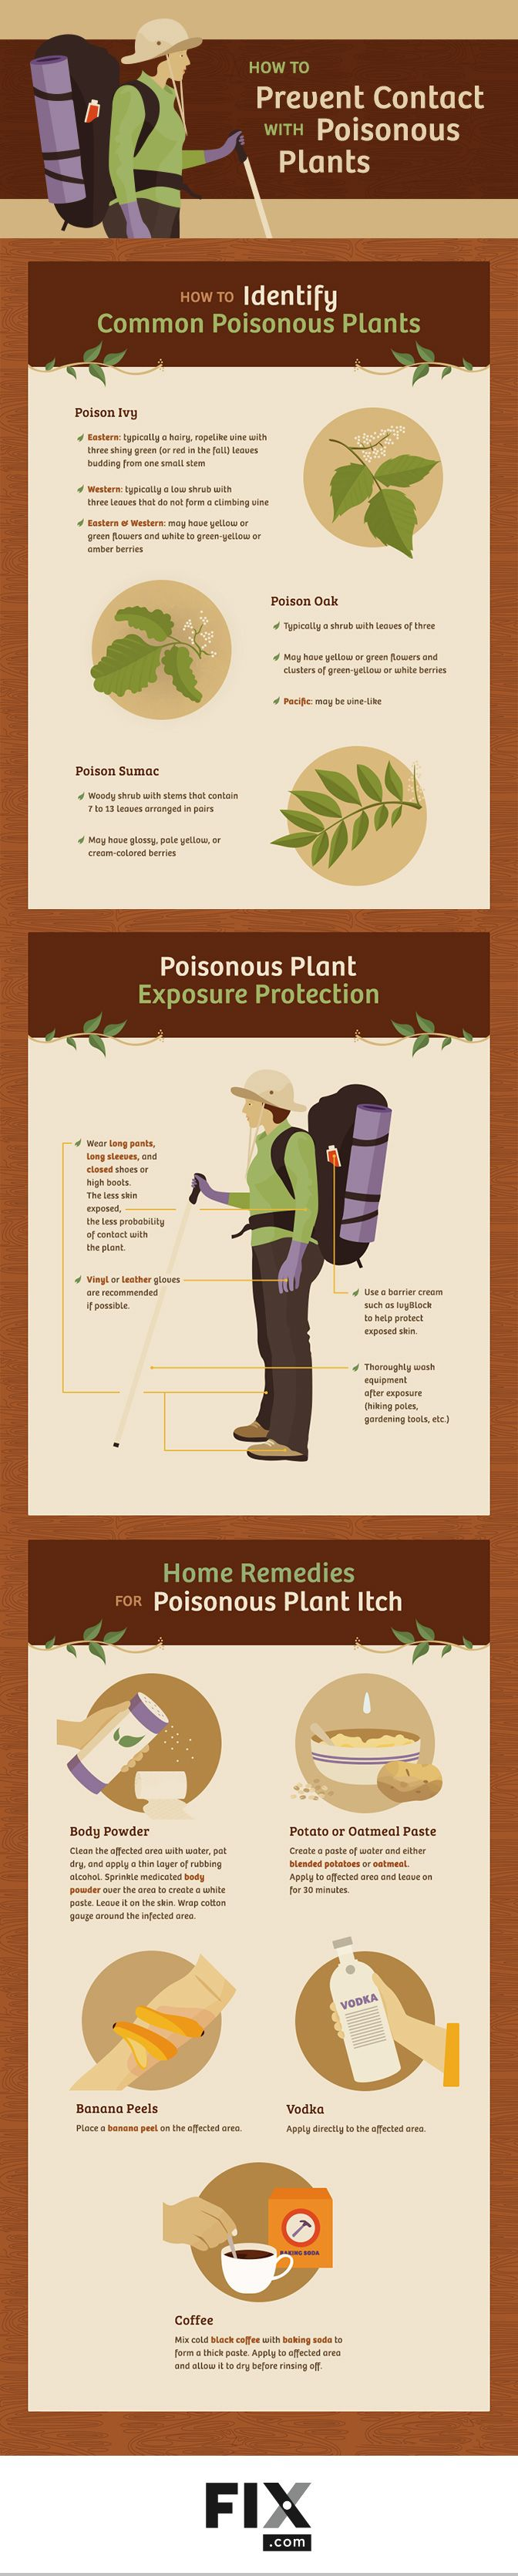 How to Prevent Contact With Poisonous Plants #infographic